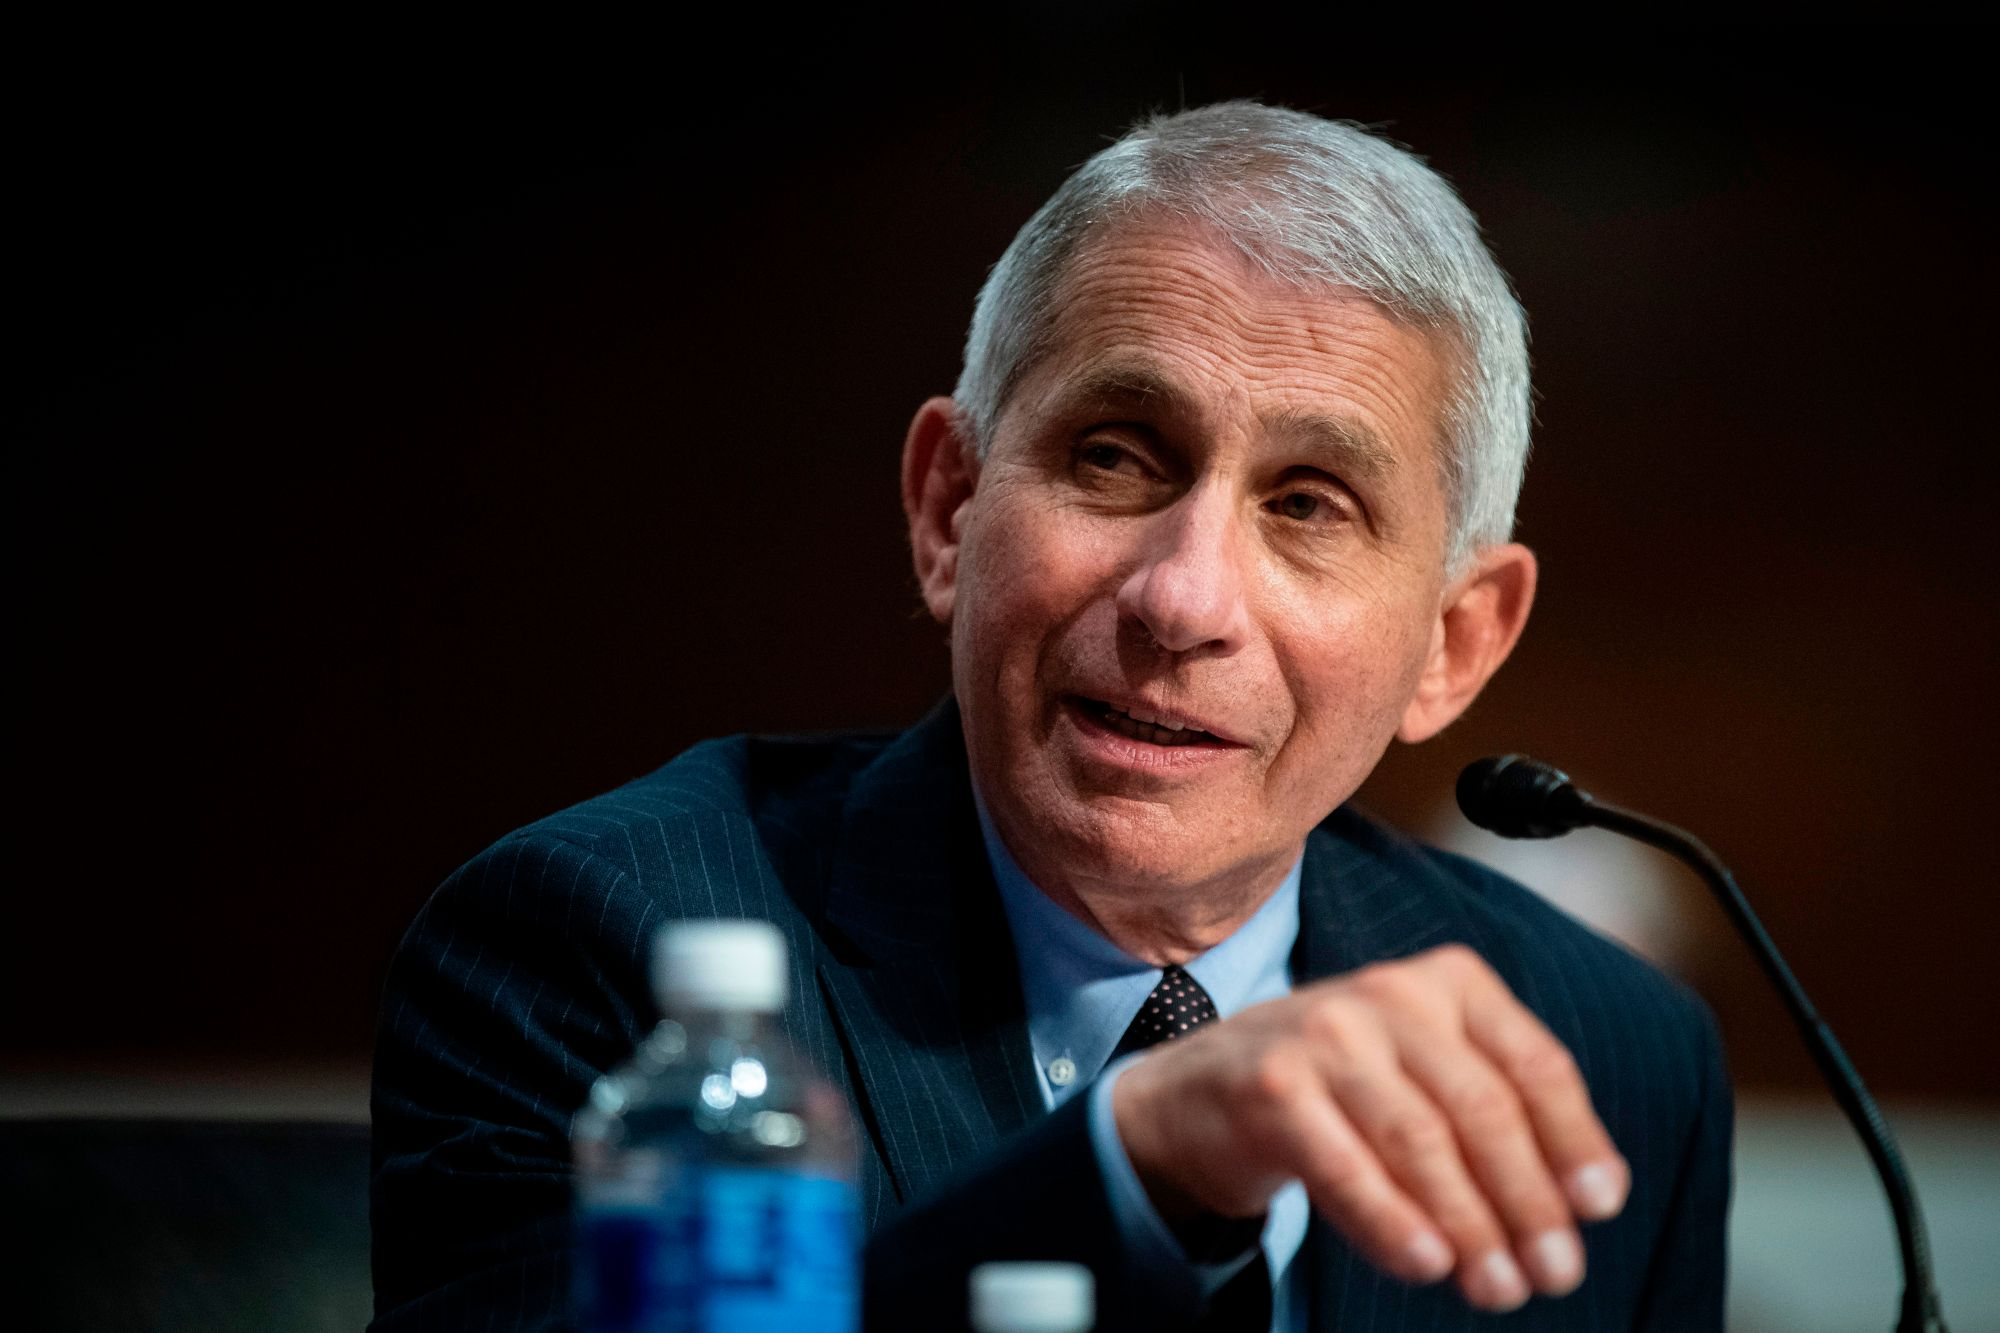 Anthony Fauci, director of the National Institute of Allergy and Infectious Diseases, speaks during a Senate Health, Education, Labor and Pensions Committee hearing in Washington, DC, on June 30, 2020. (AL DRAGO/AFP via Getty Images)